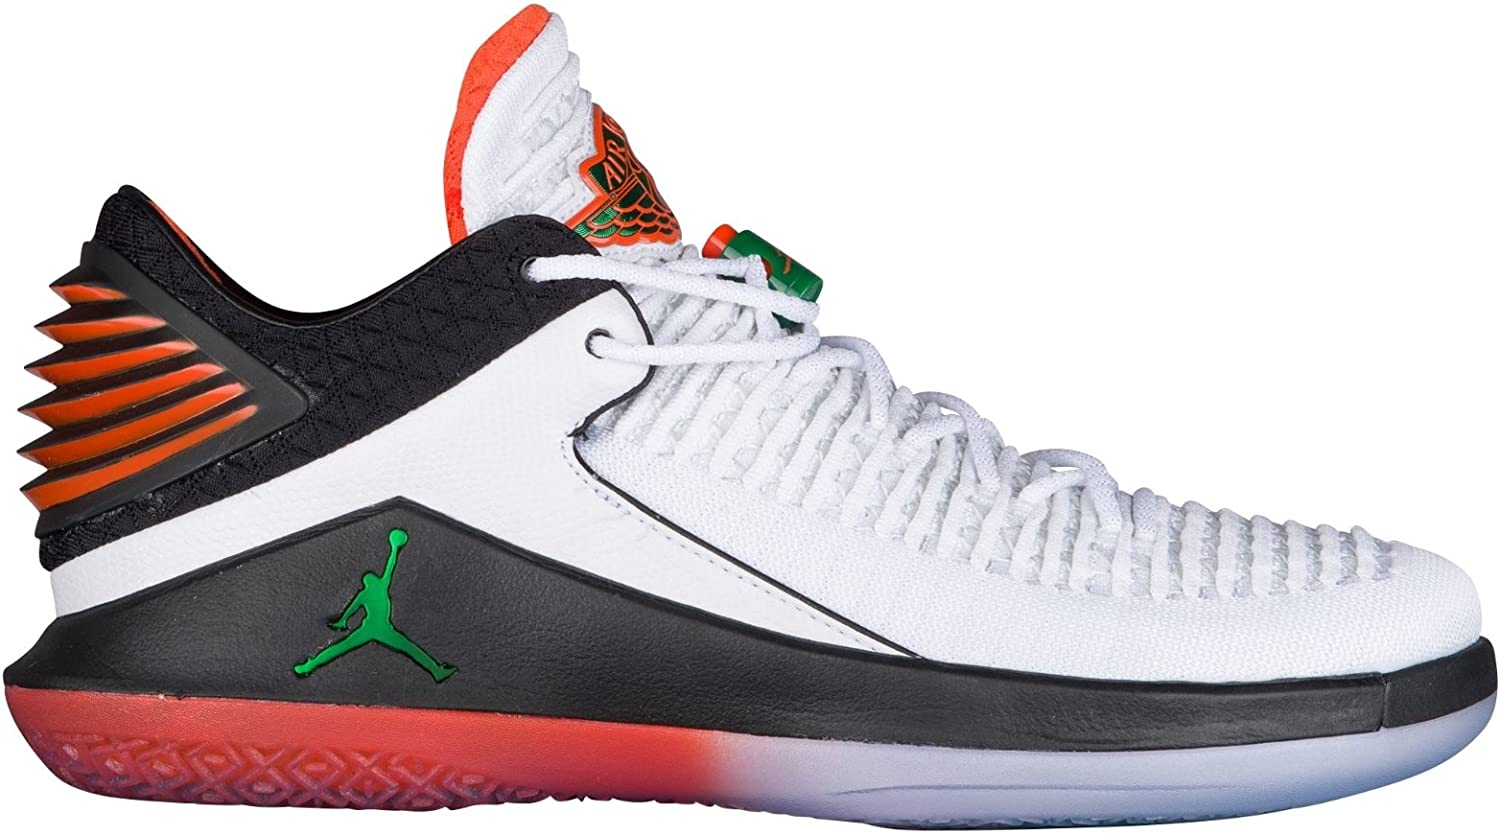 Jordan XXXIl Performance Low Top - Zapatillas, Color Blanco, Color, Talla 42 EU: Amazon.es: Zapatos y complementos